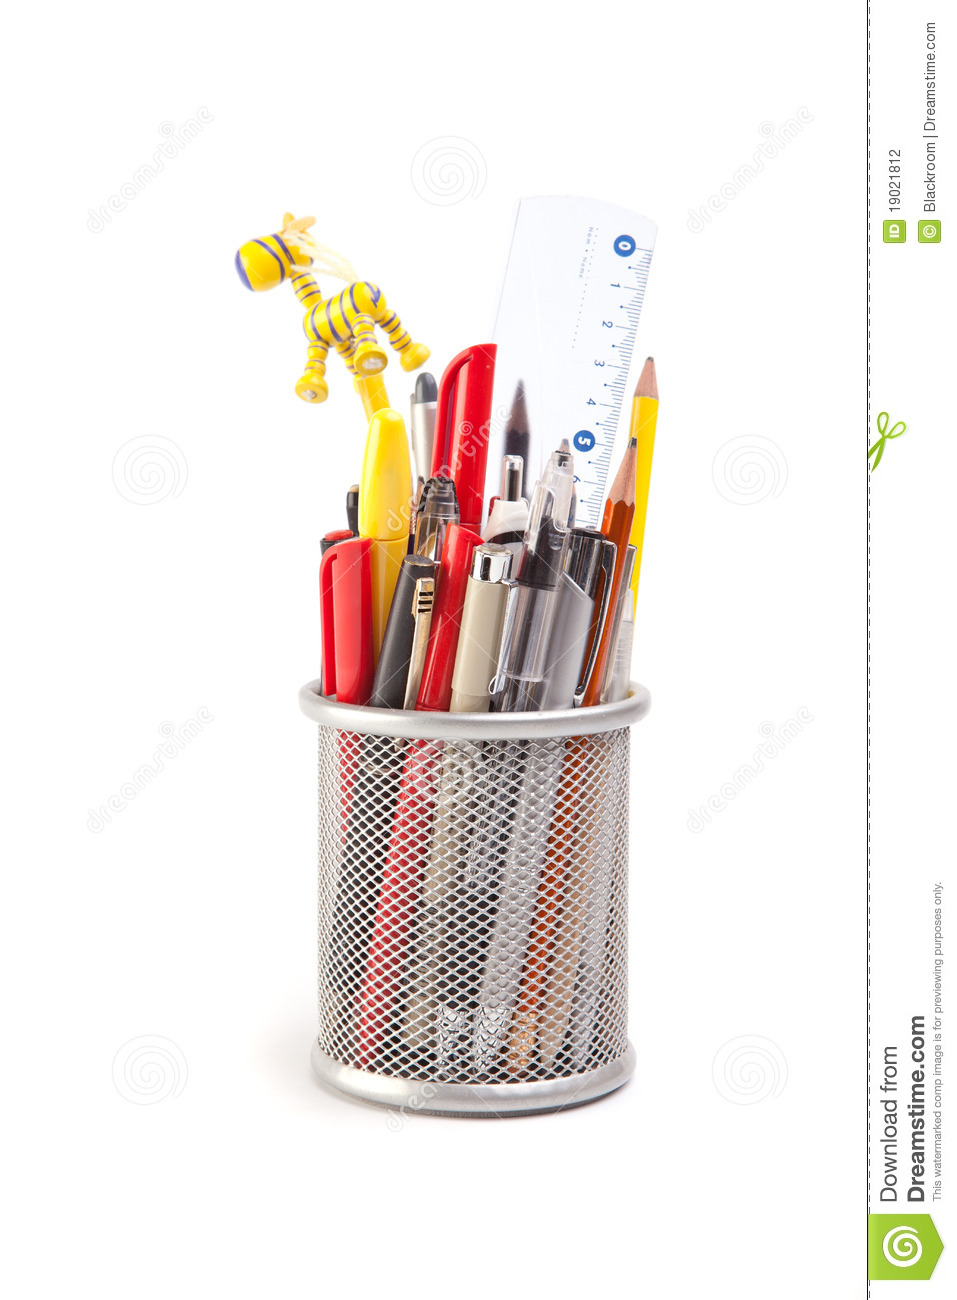 Download Pens and pencils stock photo. Image of desk, crayon, container - 19021812